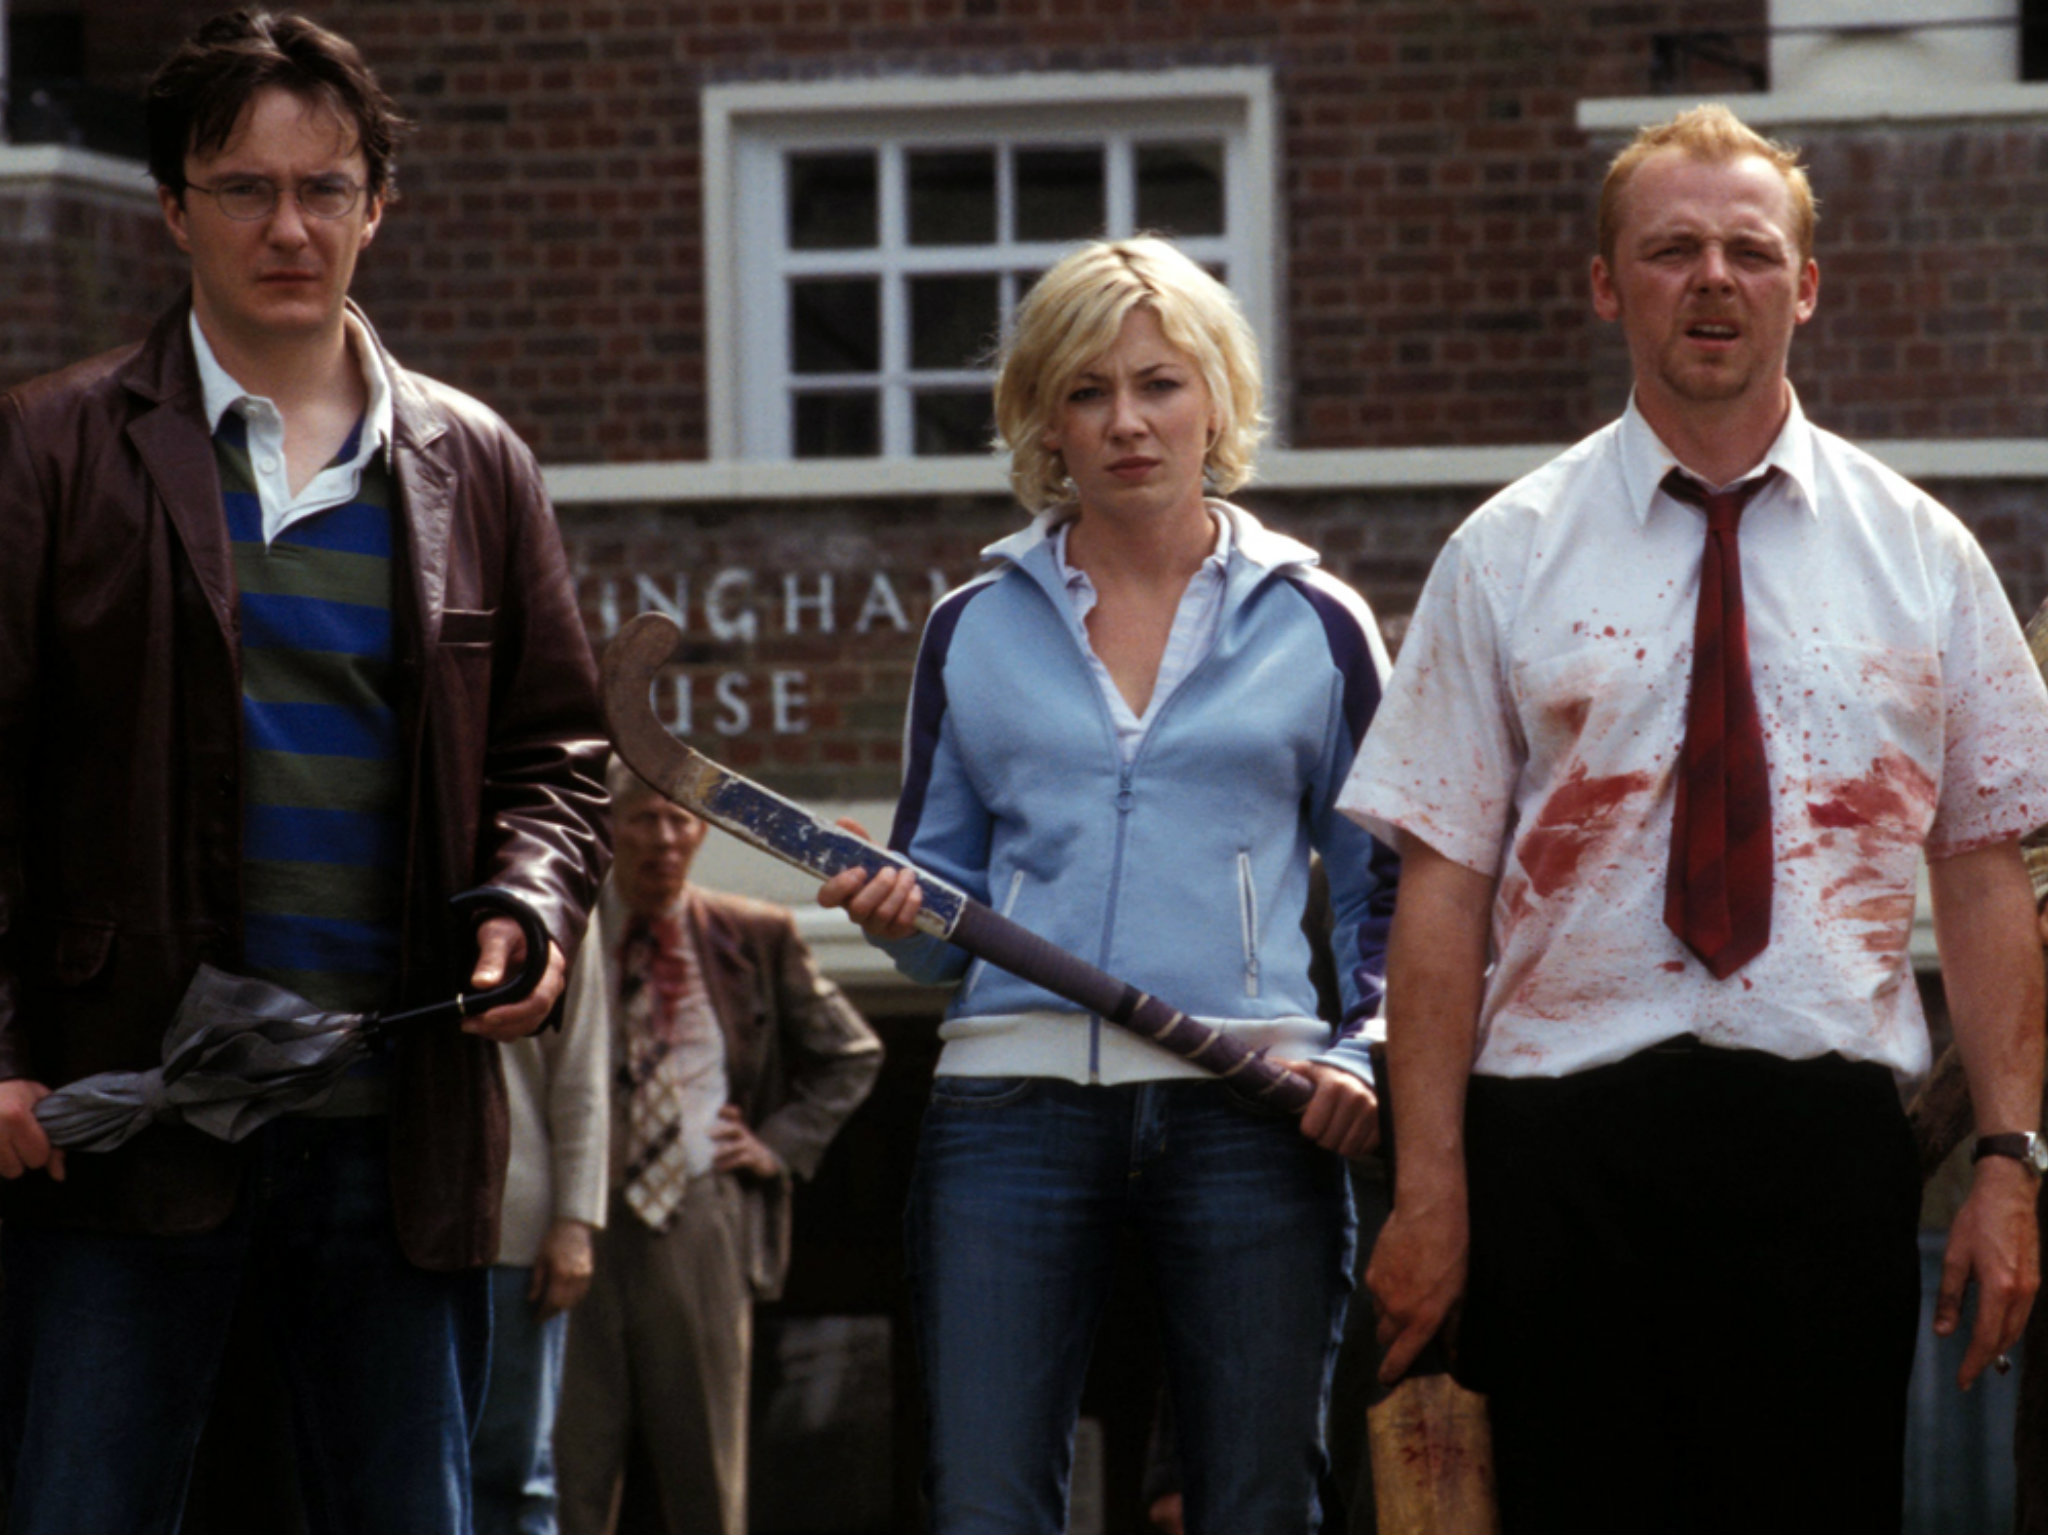 Shaun of the dead (Edgar Wright, 2004)